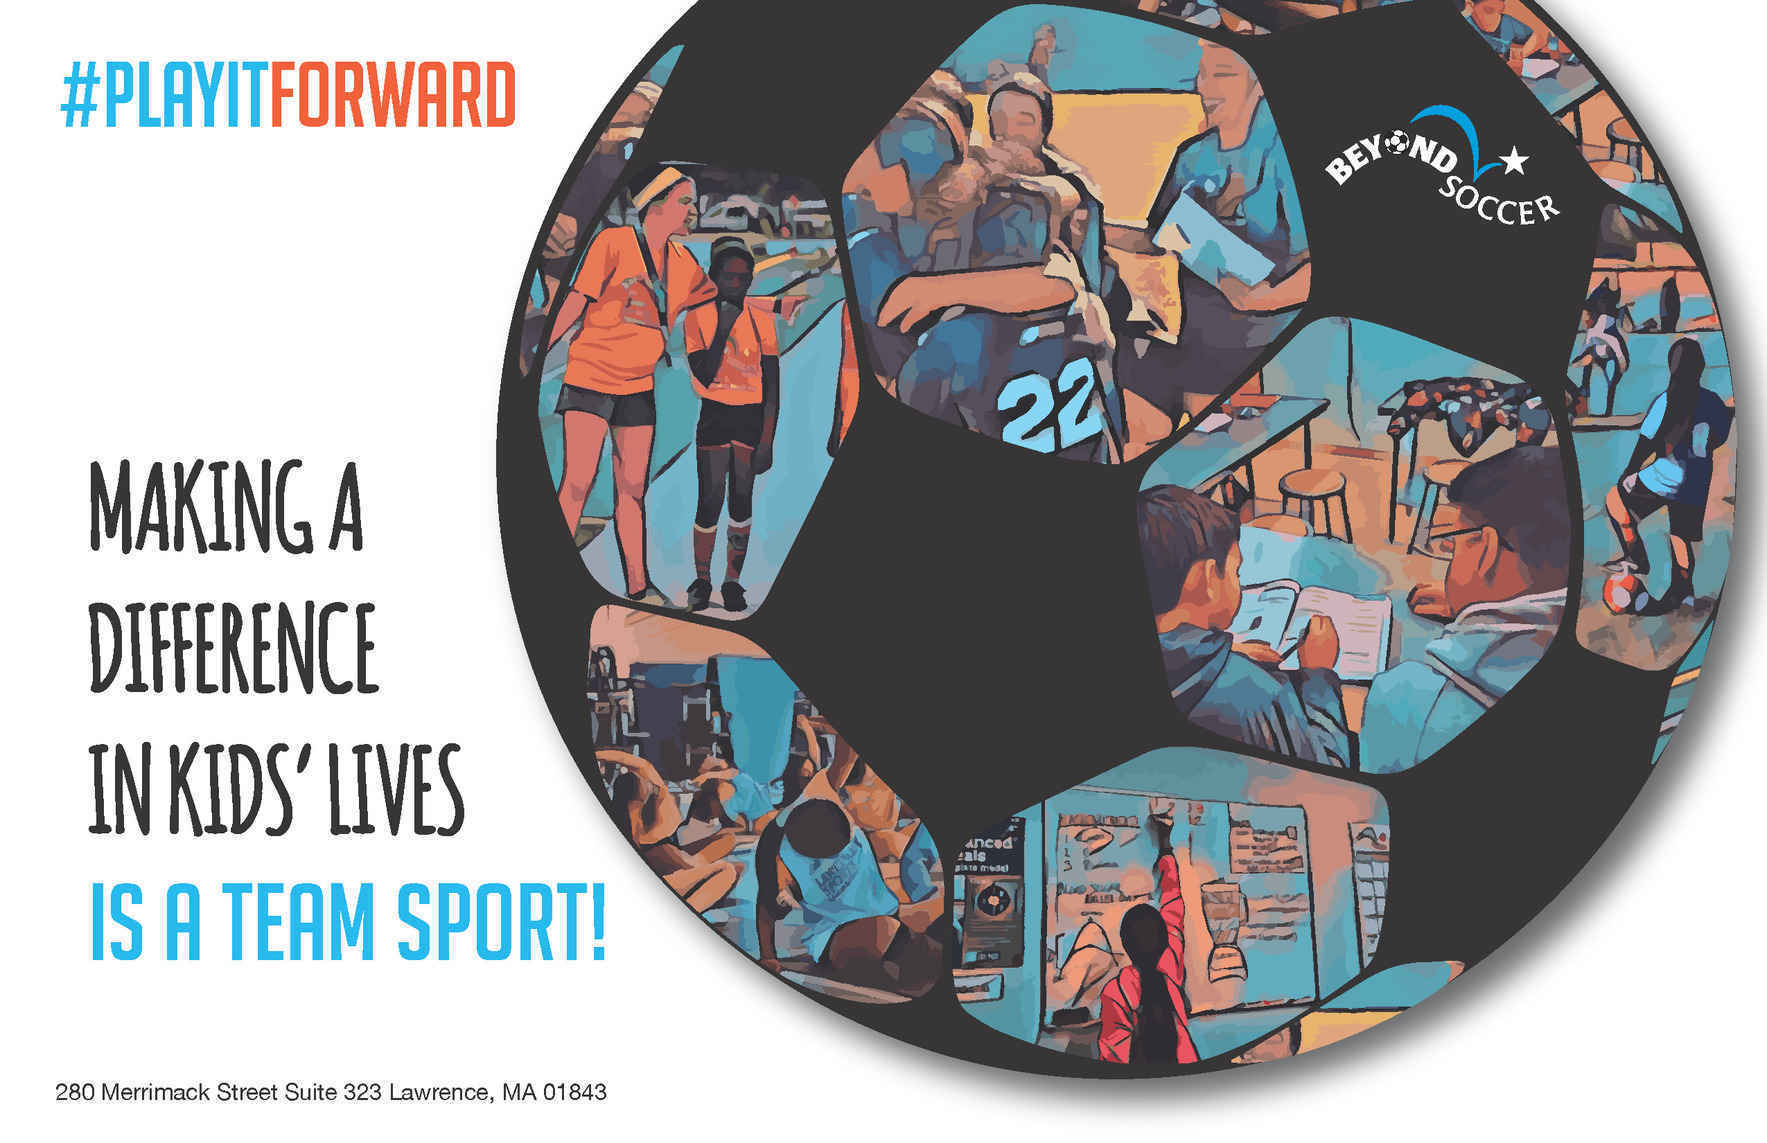 Making a Difference in Kids' Lives is a Team Sport! image